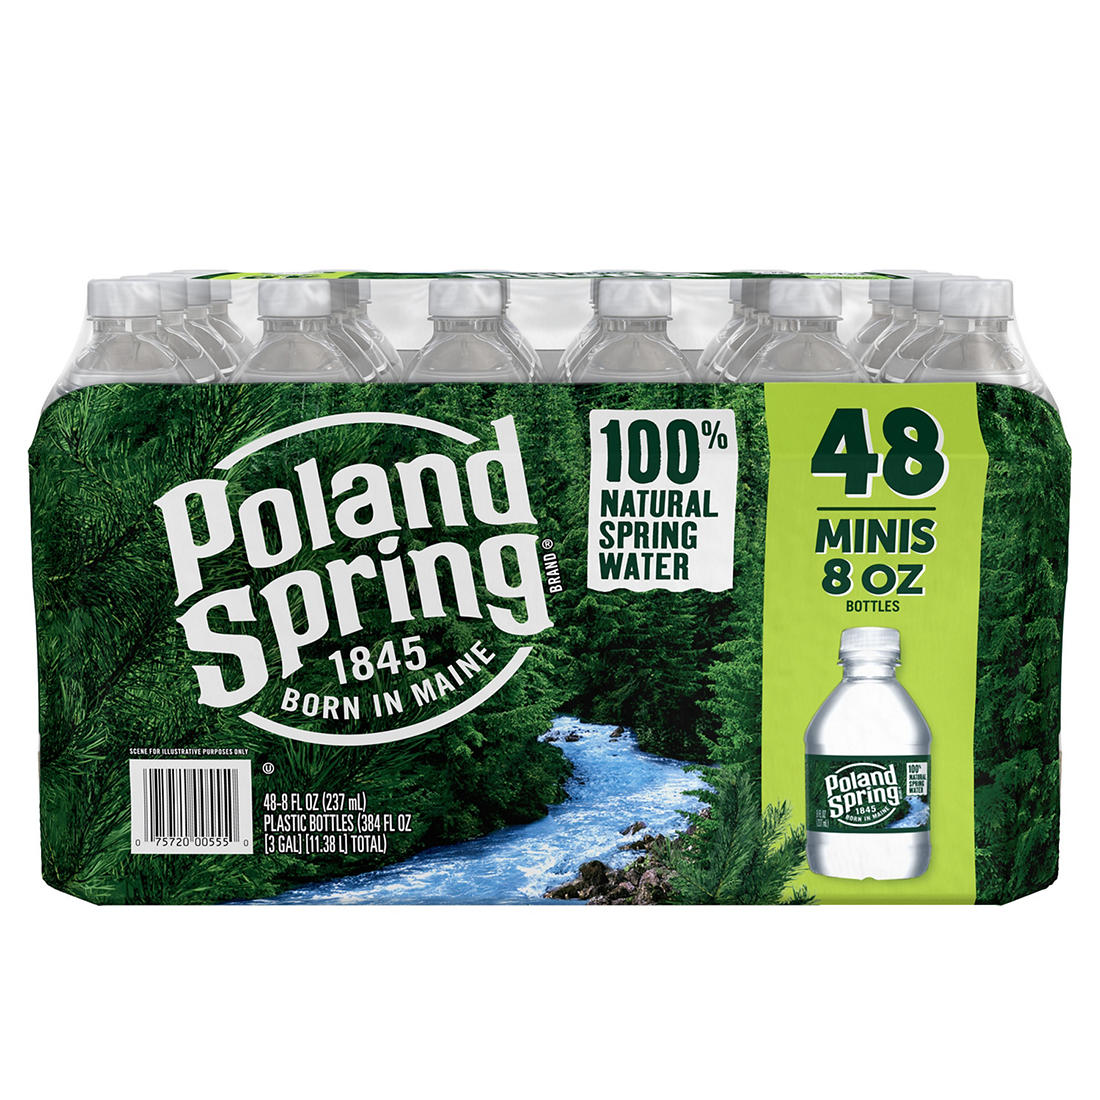 photograph regarding Printable Perk a Cola Labels named Poland Spring 100% Organic Spring H2o, Deposit, 48 pk./8 oz.